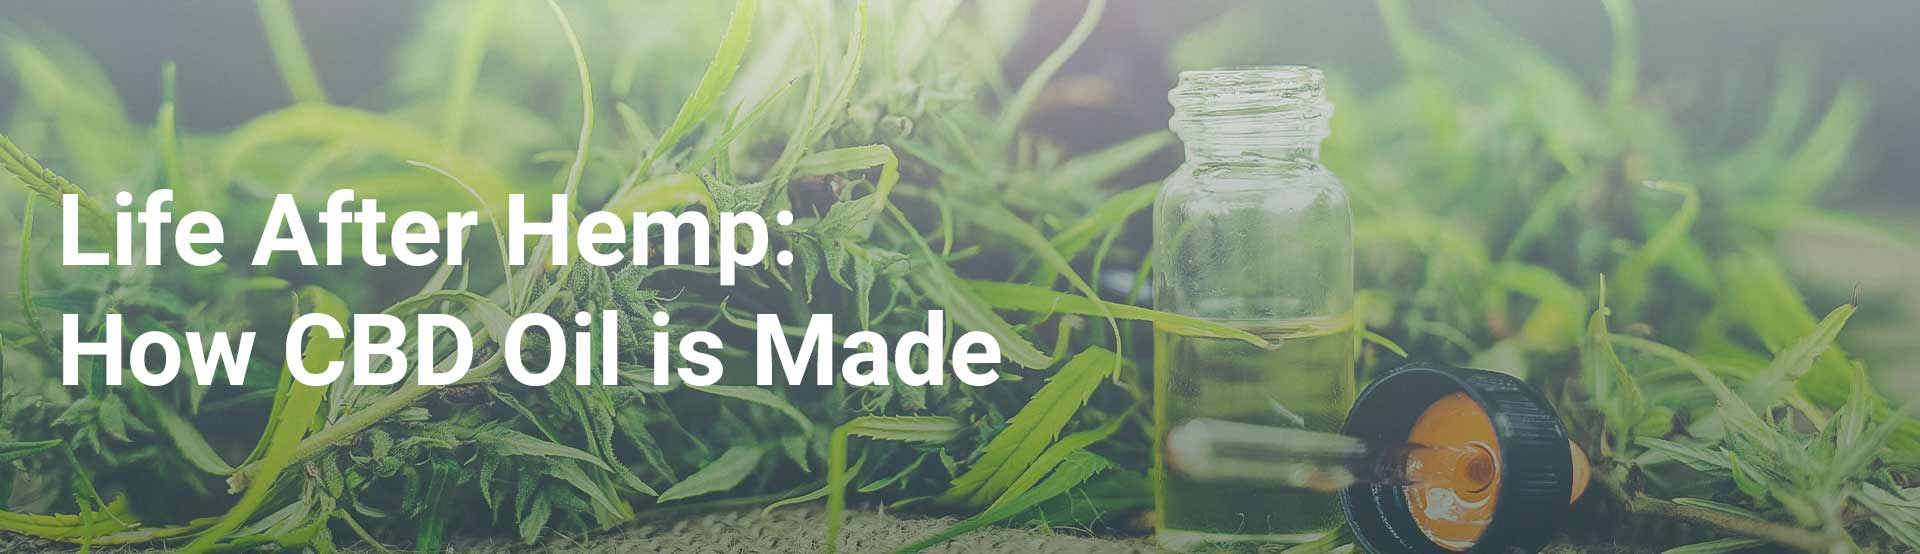 How CBD oil is made image - banner image